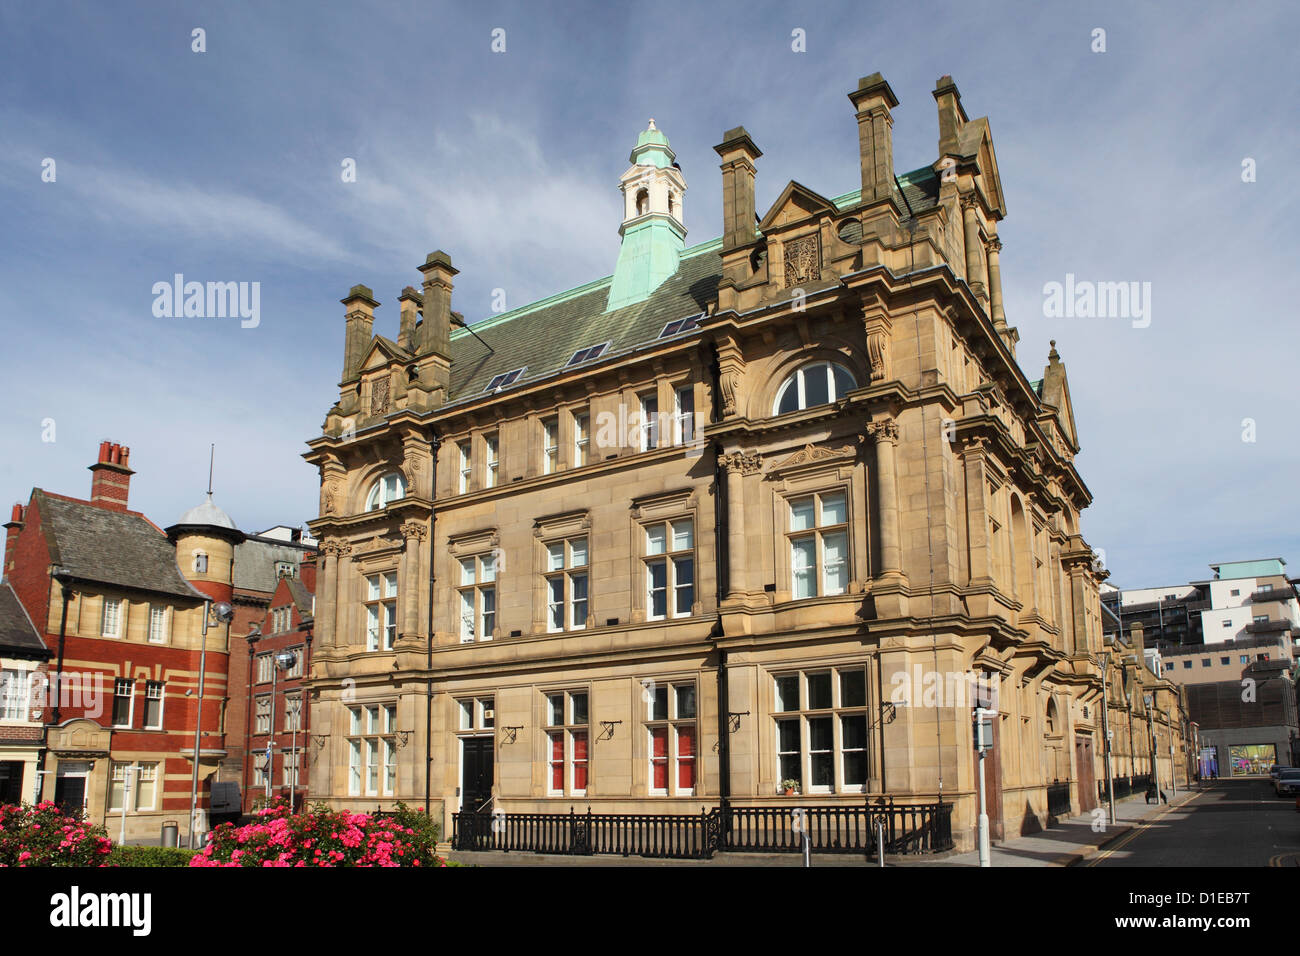 The Edwardian General Post Office, built 1902-03, in Sunderland, Tyne and Wear, England, United Kingdom, Europe - Stock Image